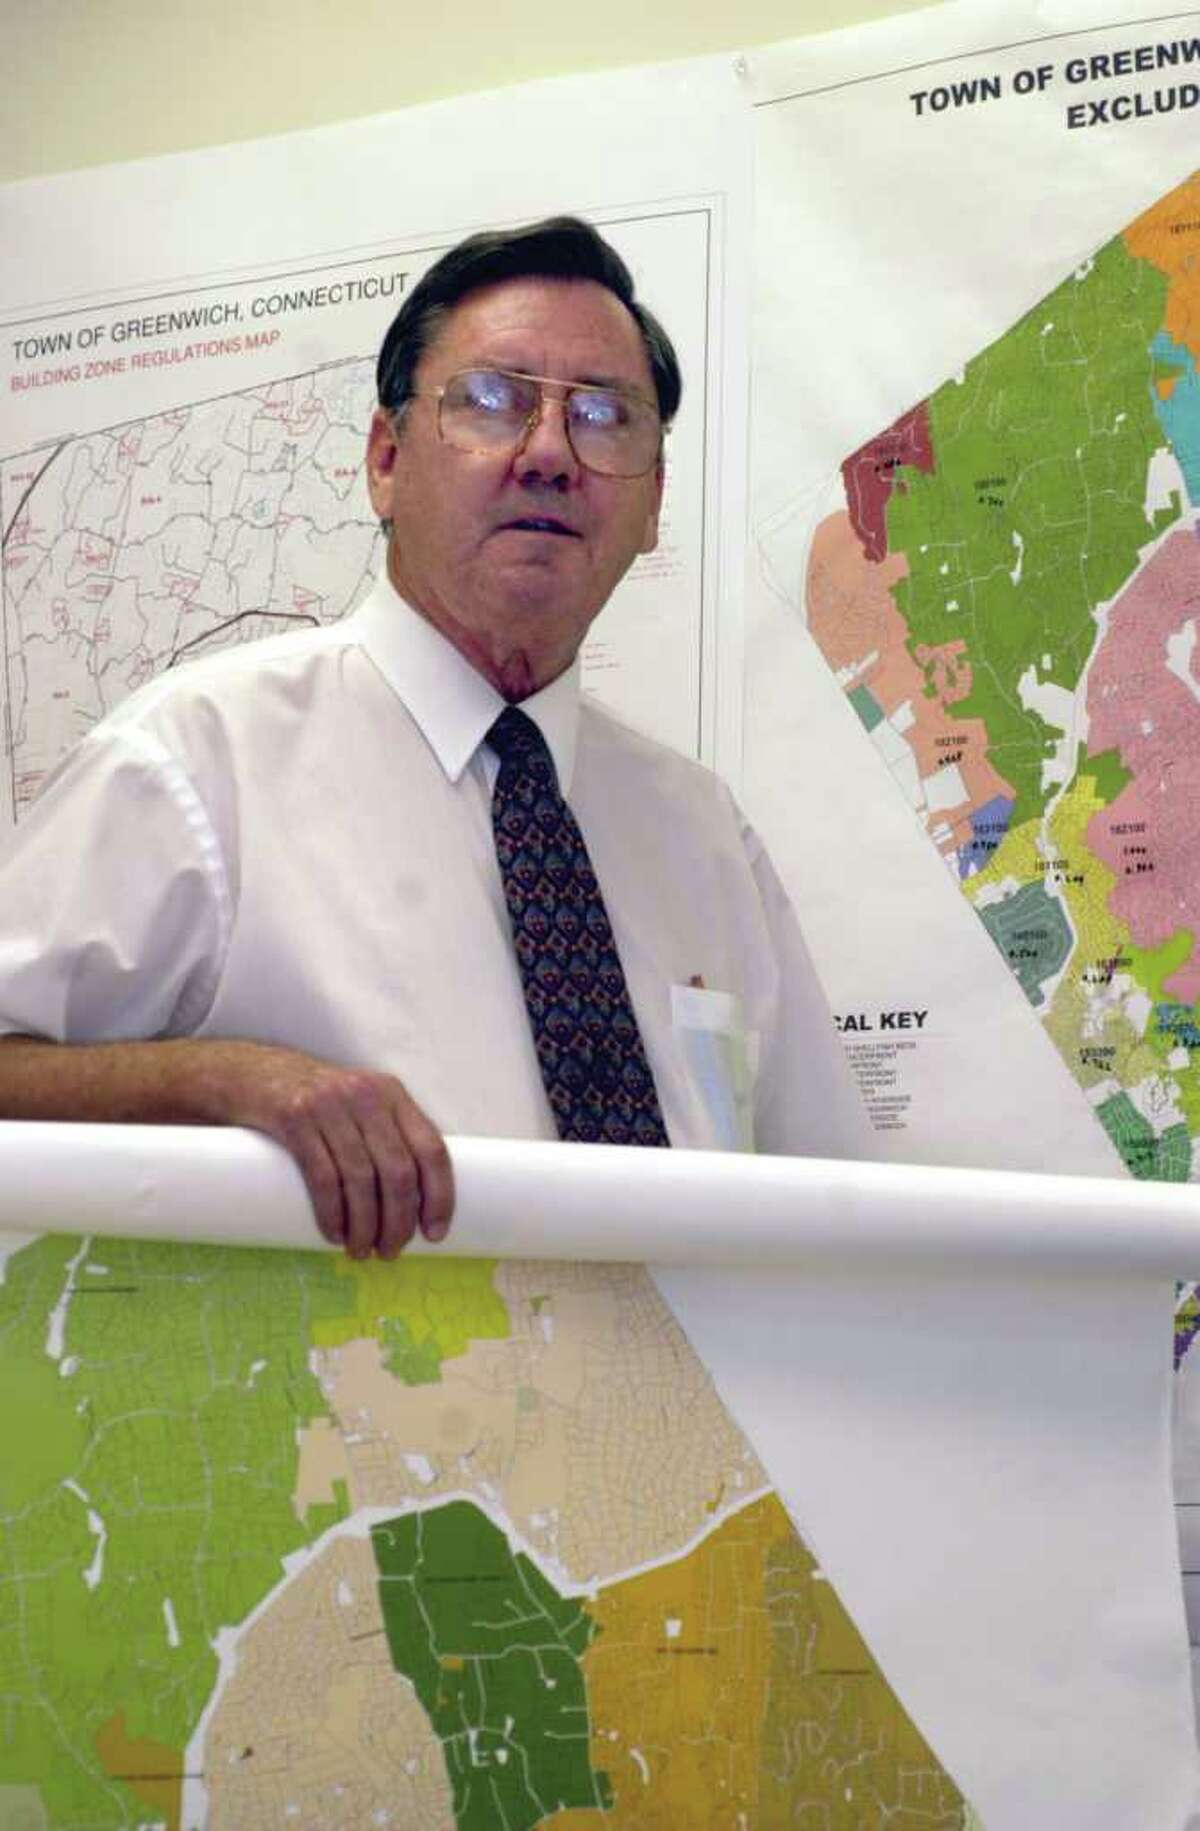 Ted Gwartney, shown here in 2005, has been Greenwich's assessor for the past nine years. Gwartney will retire Feb. 1, 2012, he announced Tuesday, Nov. 22, 2011.